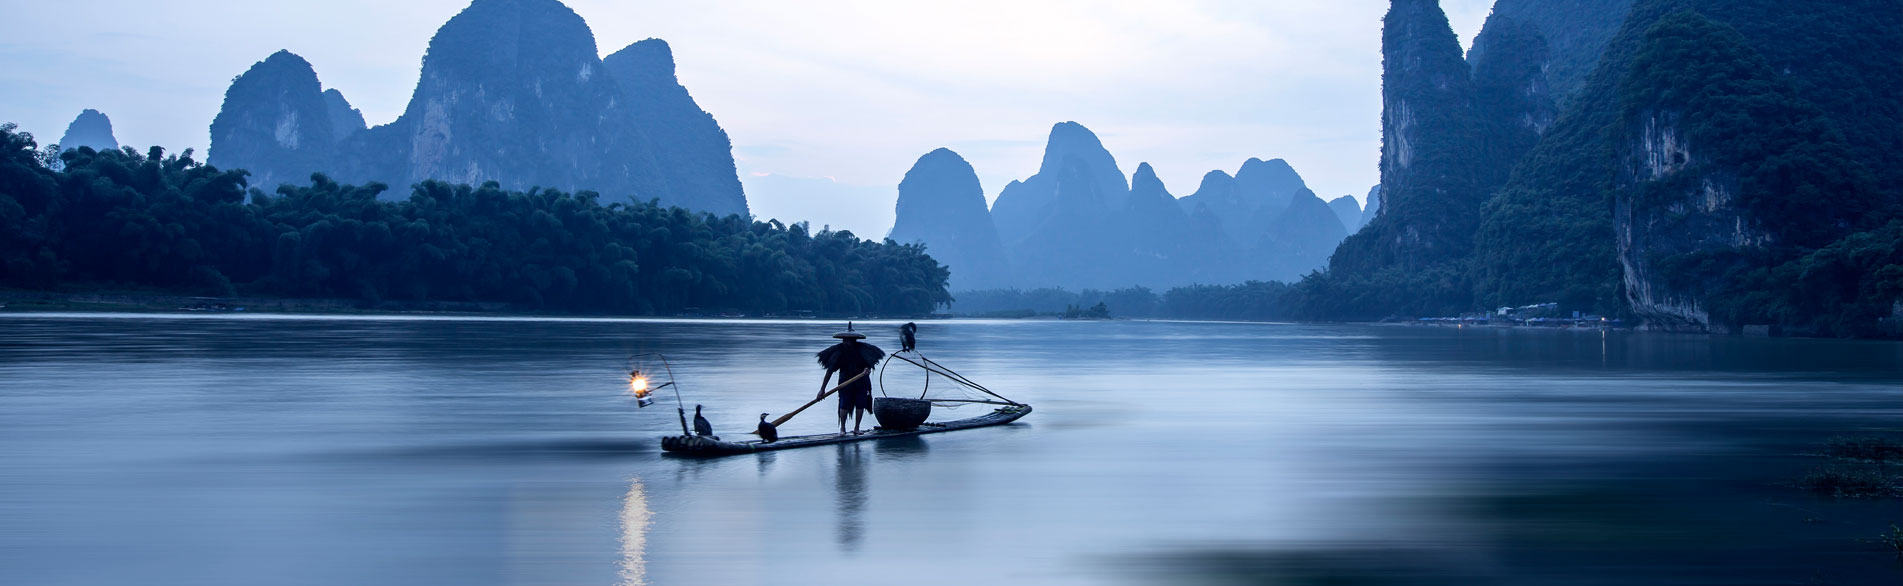 One-Day Yangshuo and Li River Highlights Tour